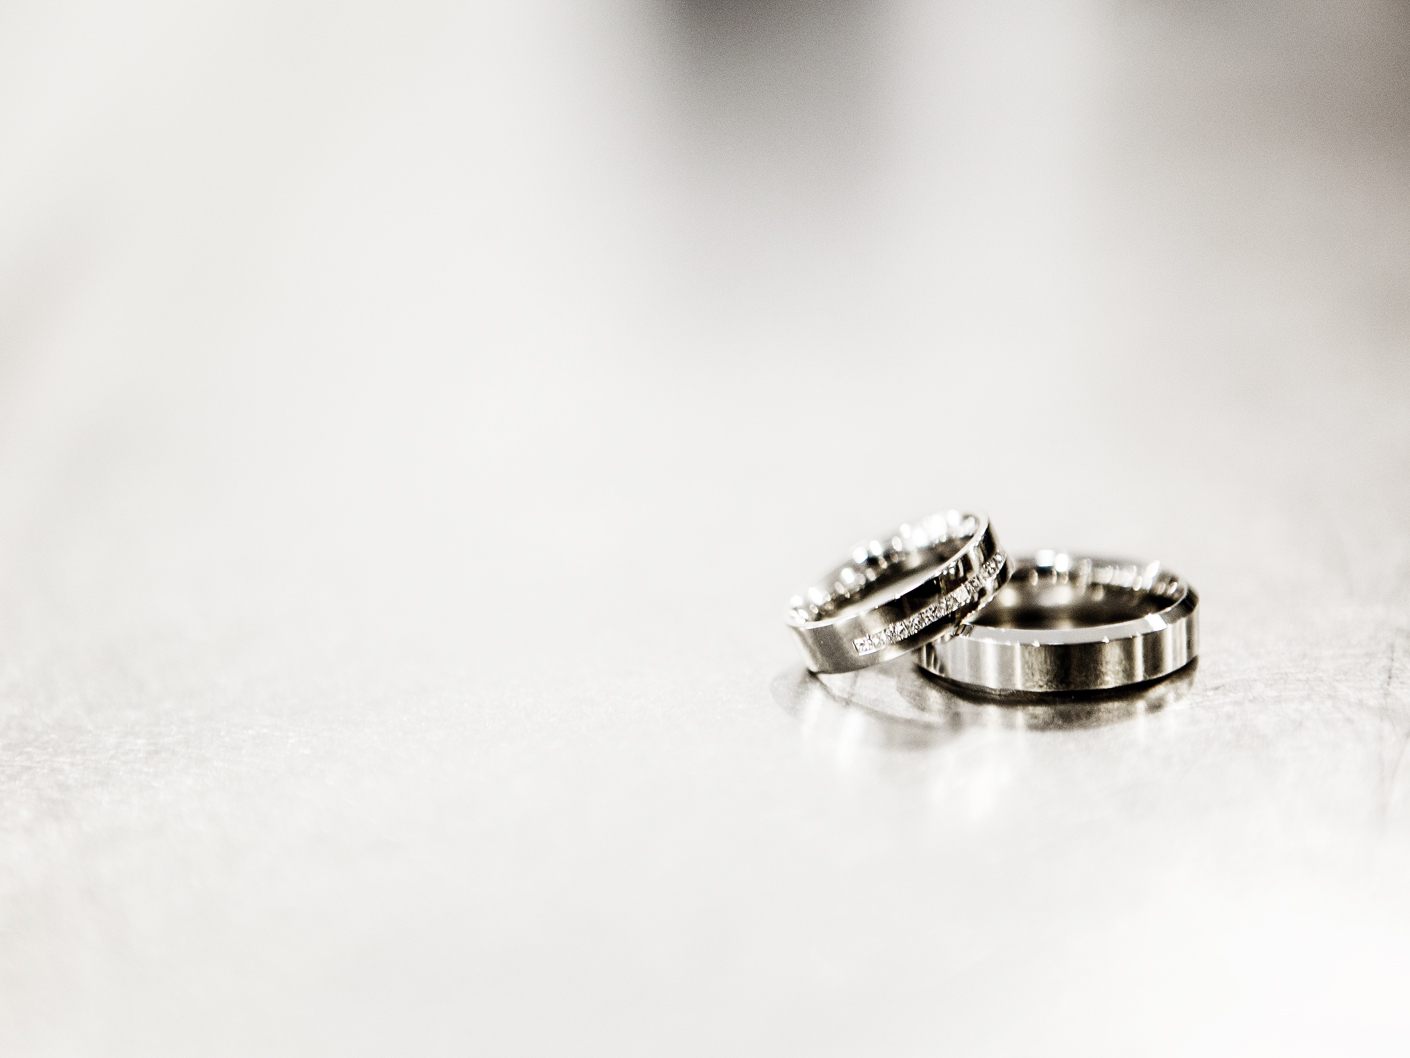 photography-of-the-wedding-rings-at-merrydale-manor-knutsford-cheshire